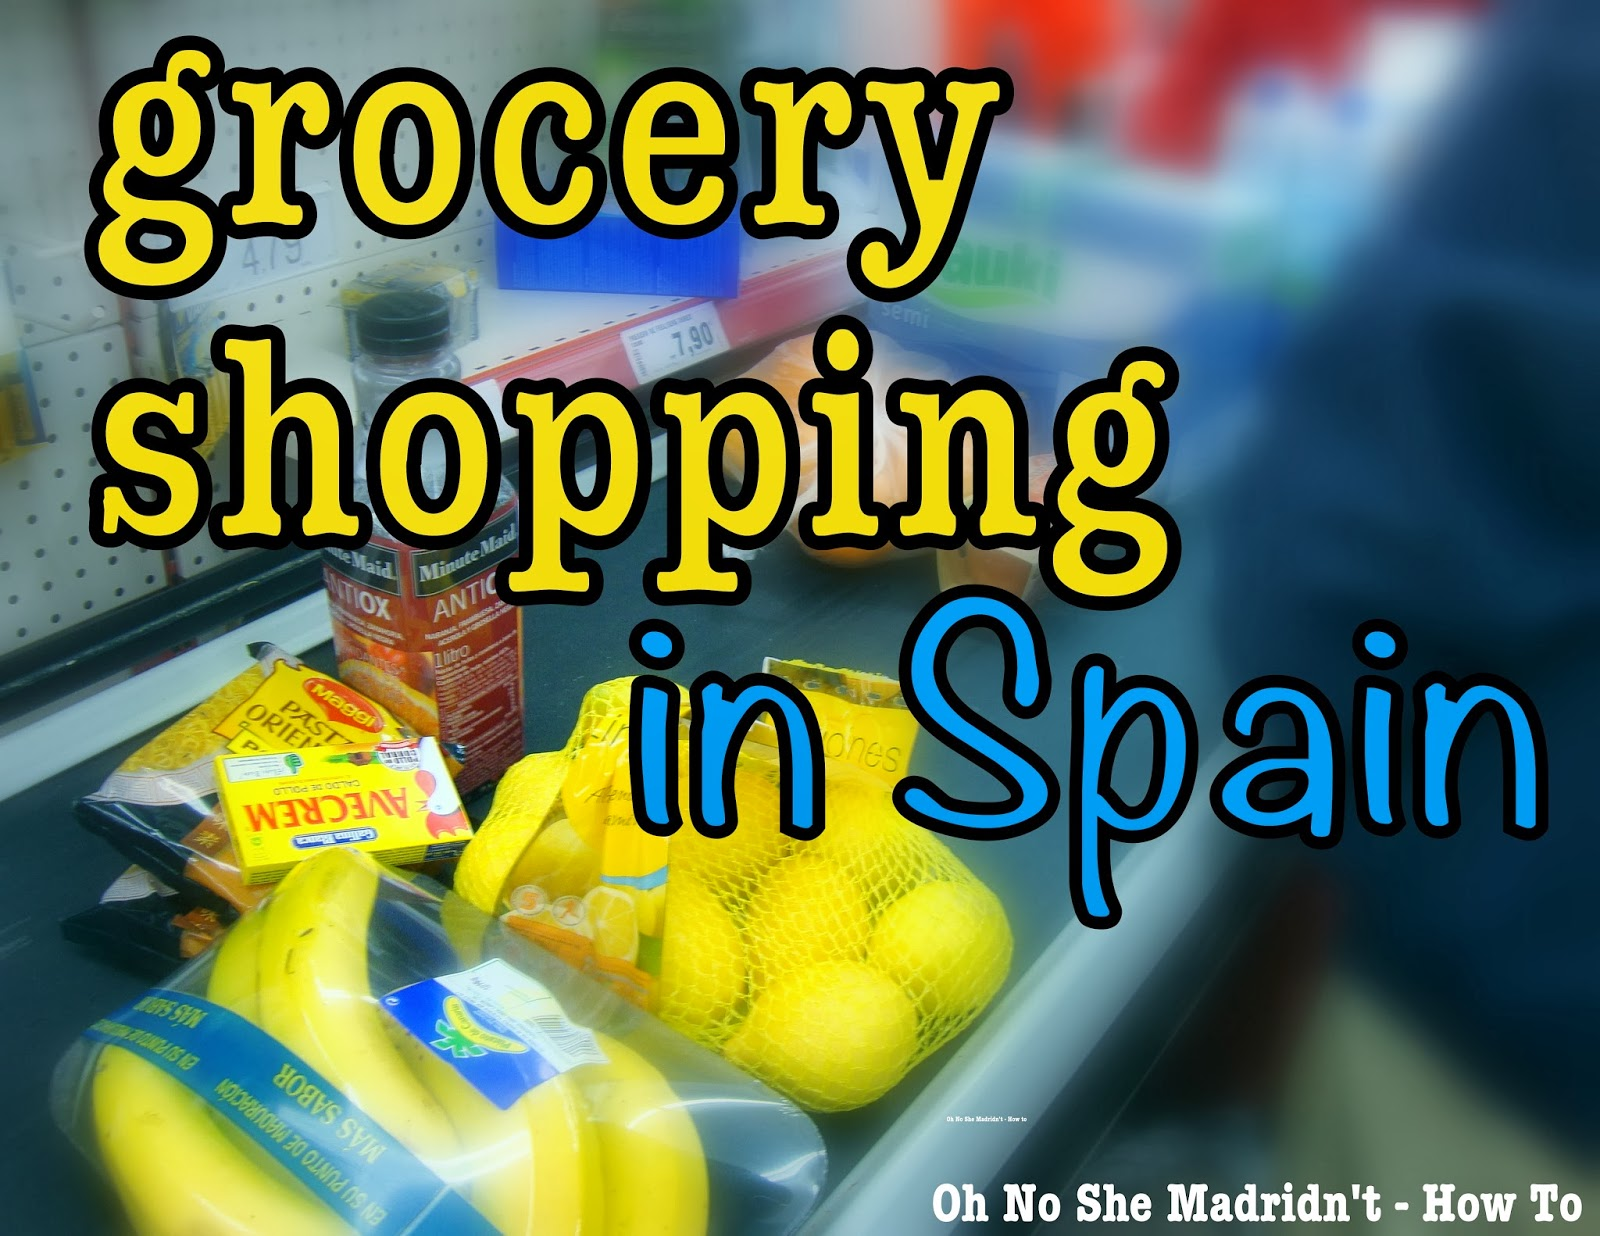 How to grocery shop in madrid oh no she madridnt how to grocery shop in madrid solutioingenieria Image collections